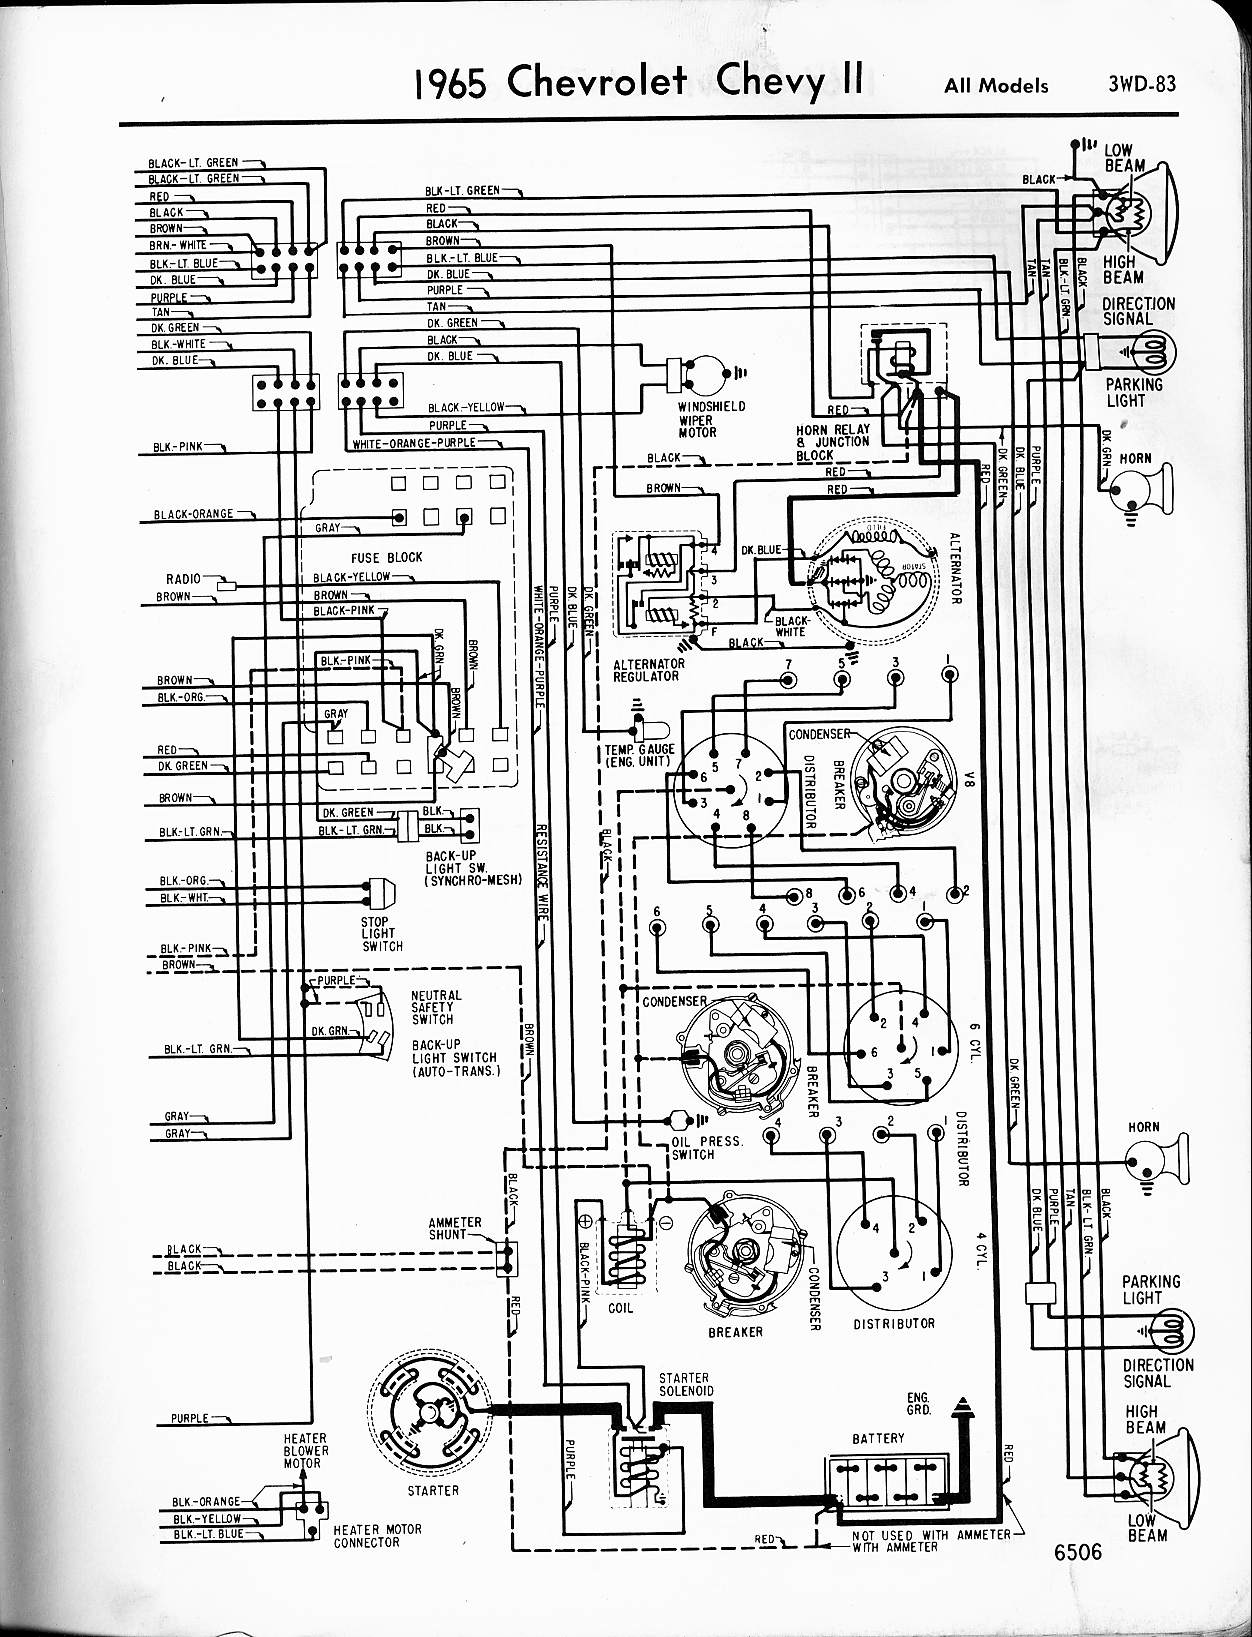 MWireChev65_3WD 083 1966 corvette wiring diagram 1966 corvette headlight wiring 1966 ford truck wiring diagram at aneh.co